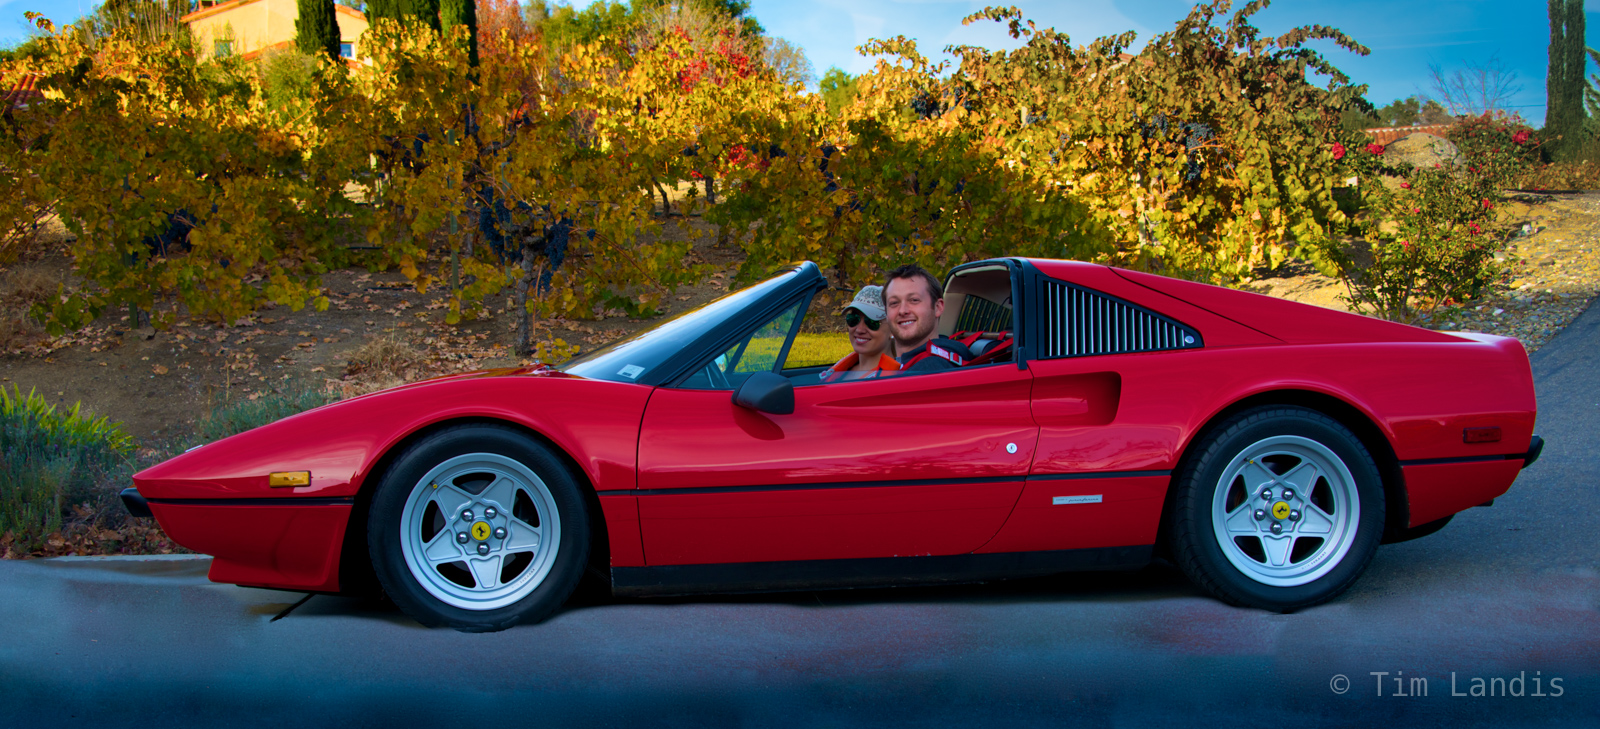 Ferrari in front of the vineyards in Northern California,driven by super models !